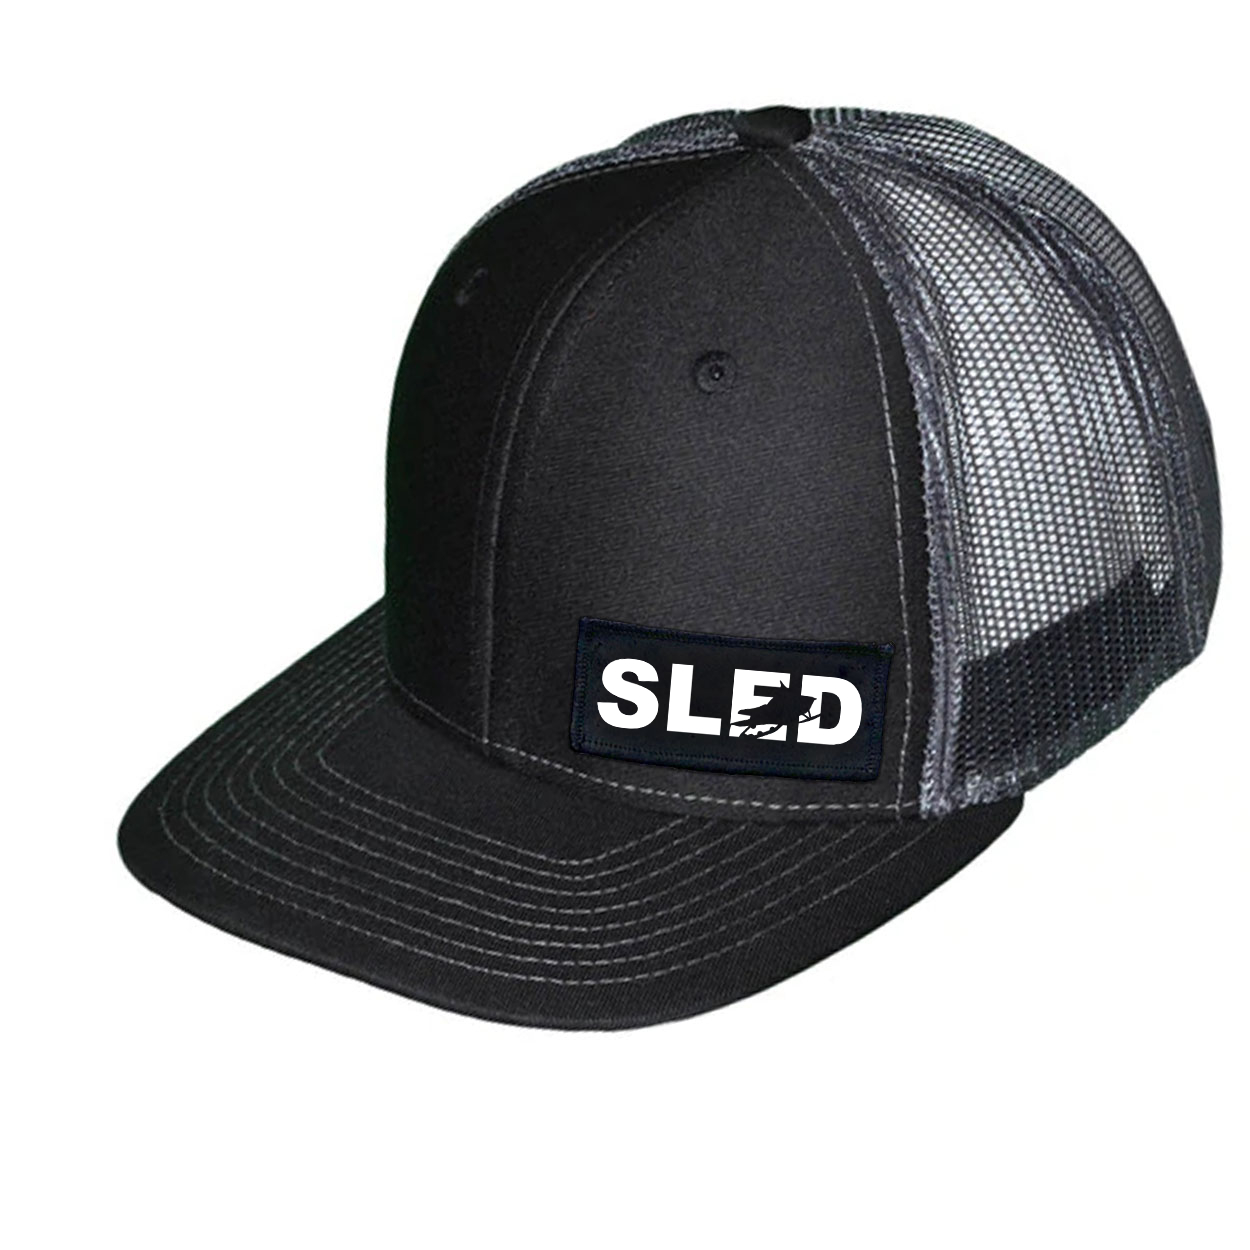 Sled Snowmobile Logo Night Out Woven Patch Snapback Trucker Hat Black/Dark Gray (White Logo)